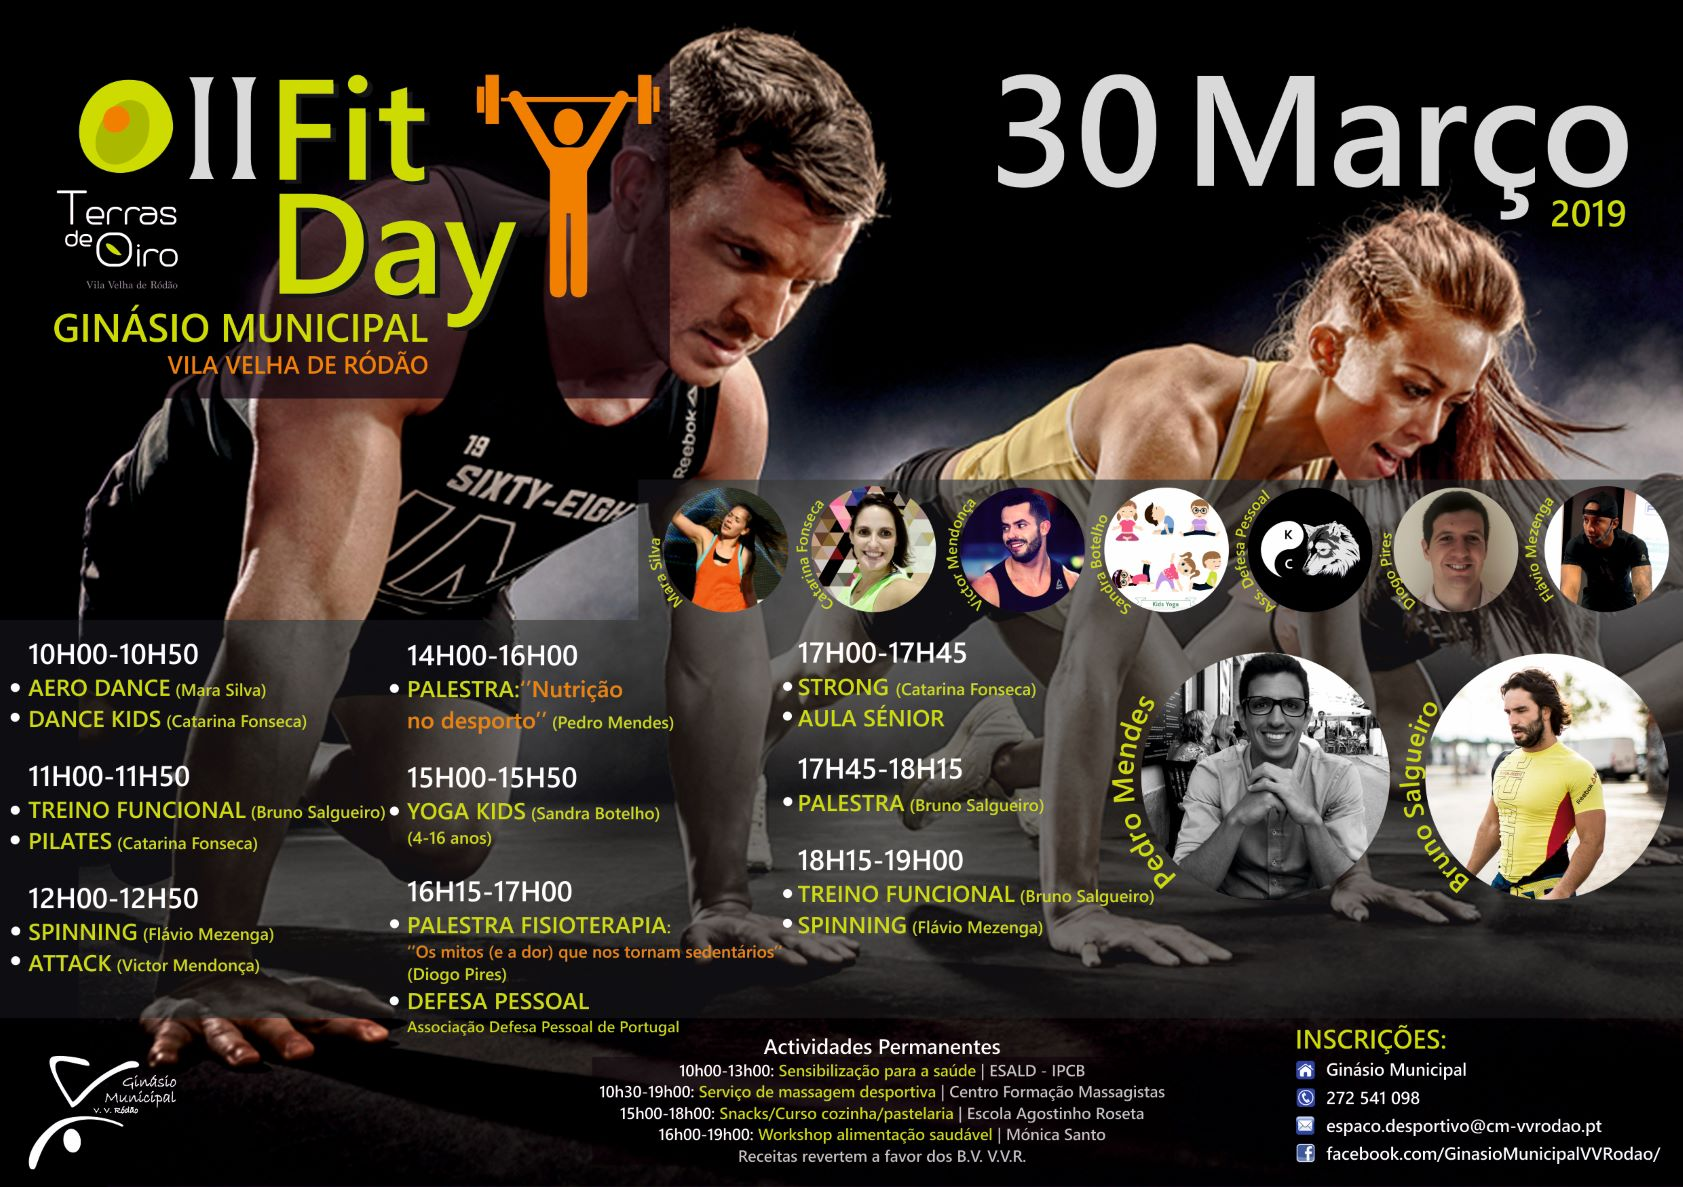 Anexo NI FIT DAY Terrasoiro VVR